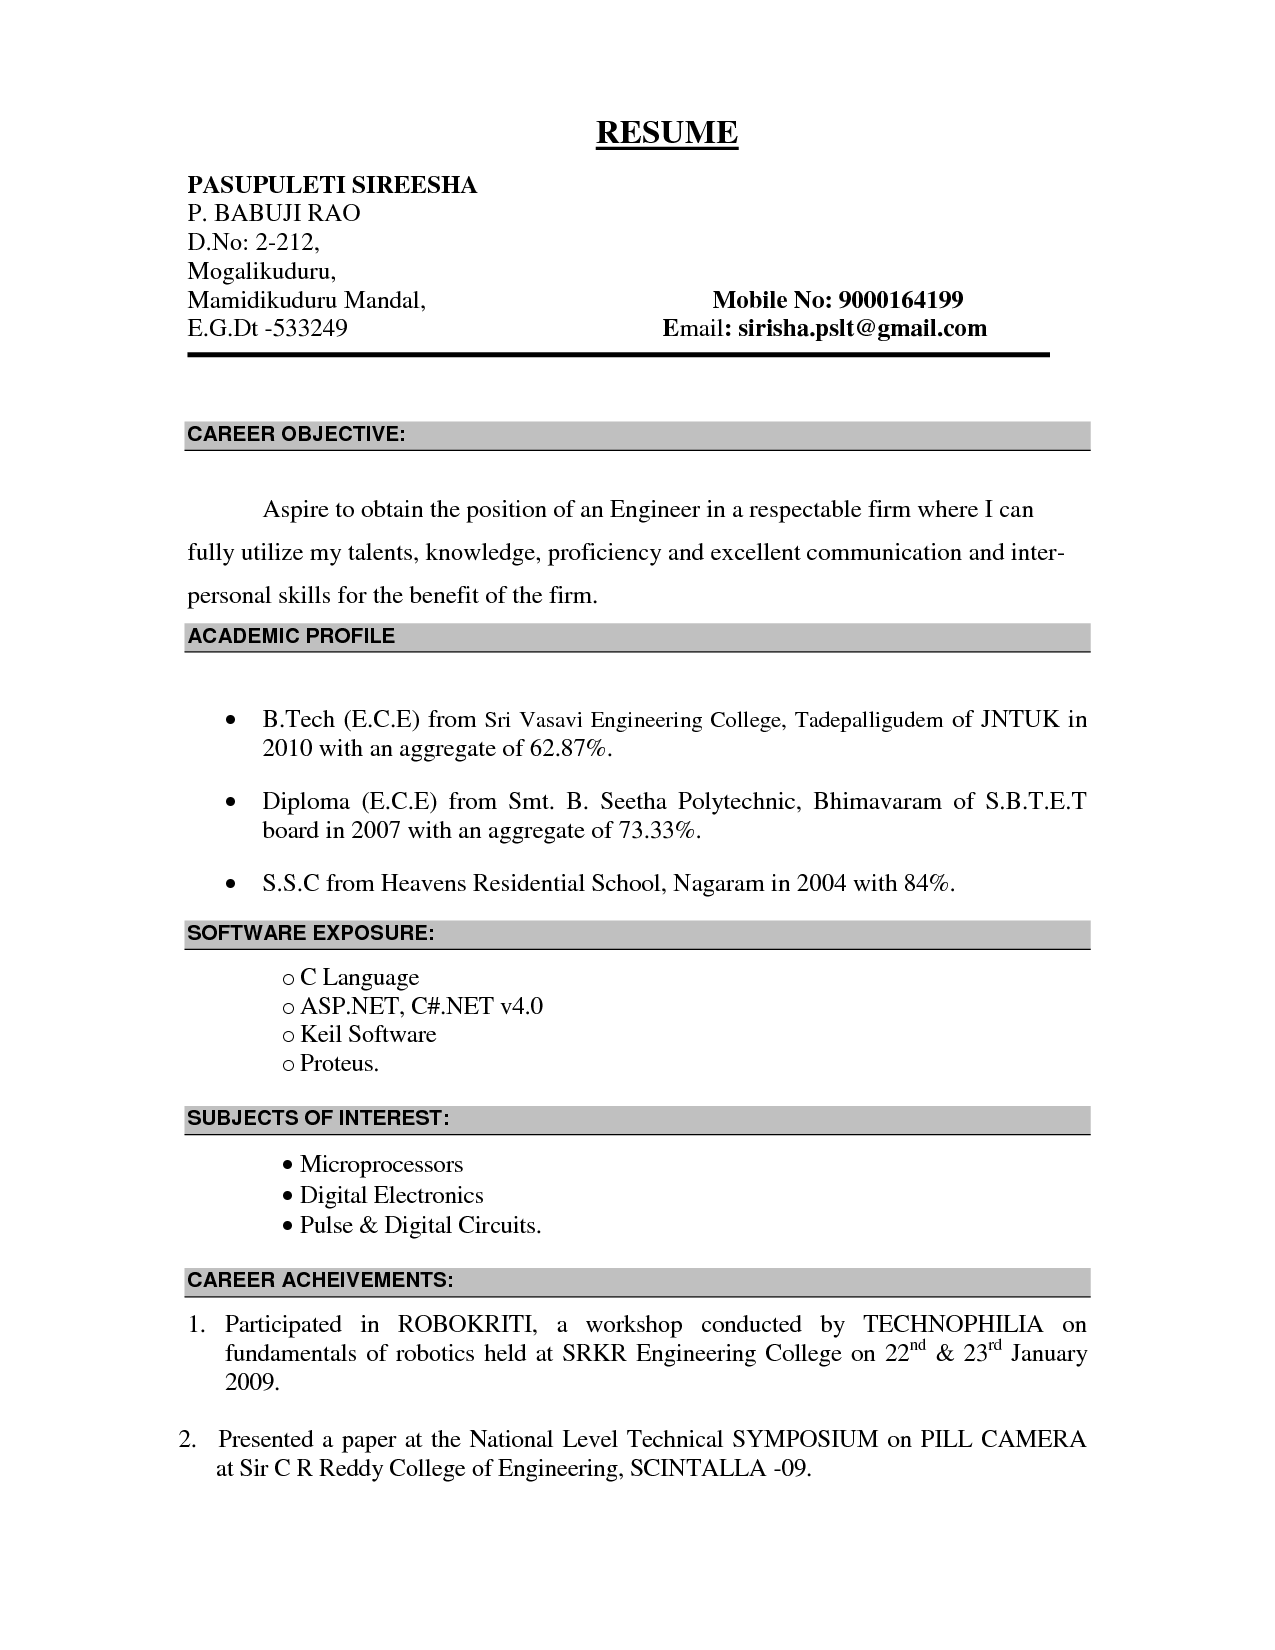 Resume Format With Objective | Sample Of Objective On Resume Template Free Label Templates